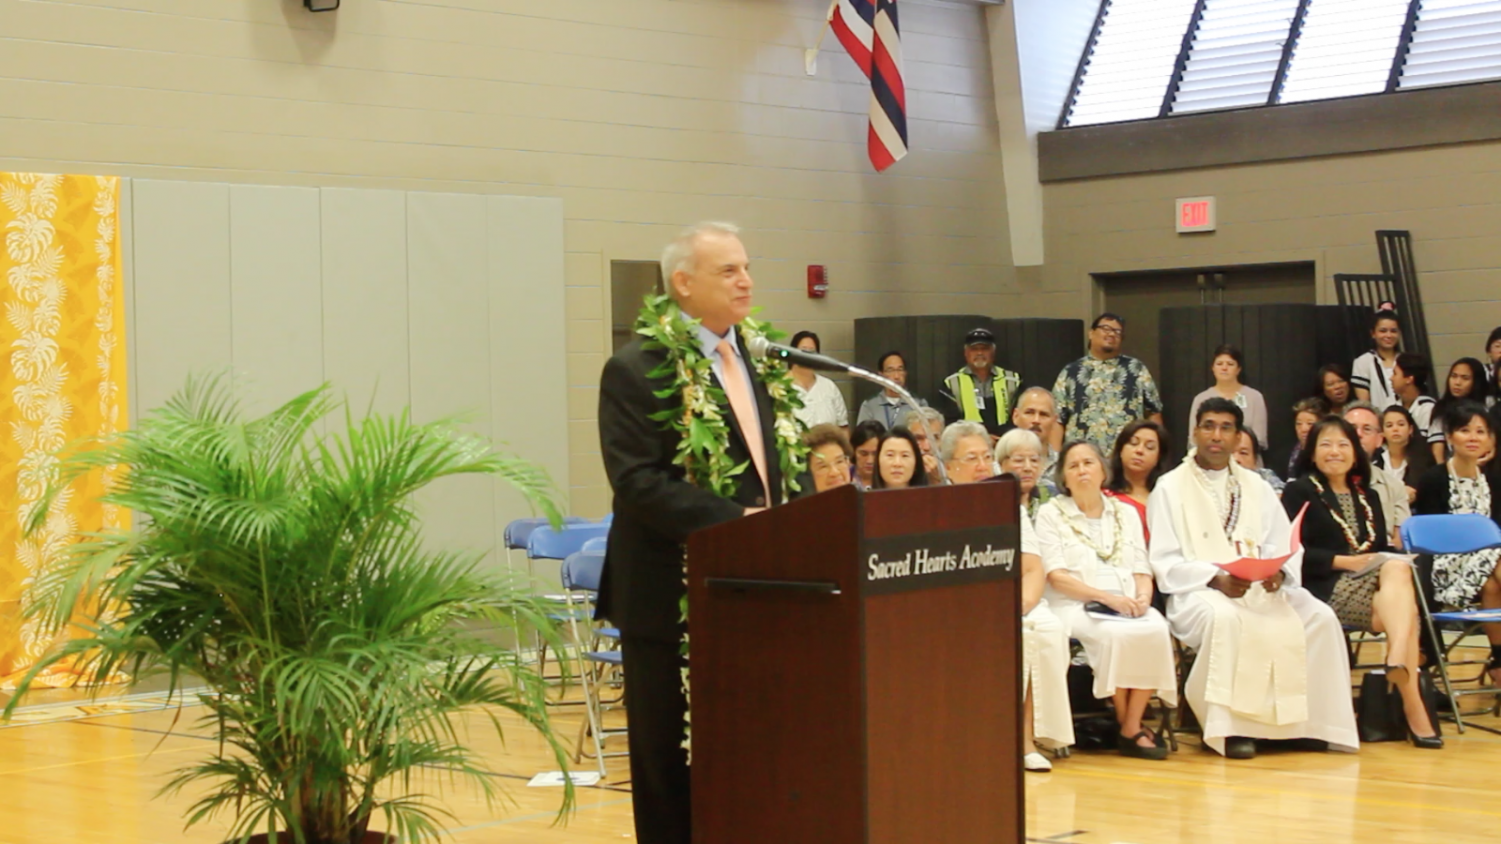 Dr. Scott Schroeder made his official public appearance to Sacred Hearts Academy as the new Head of School following current Head of School, Betty White's retirement in a special morning assembly on Feb. 28 2019. Photo by Rebecca Meyer.